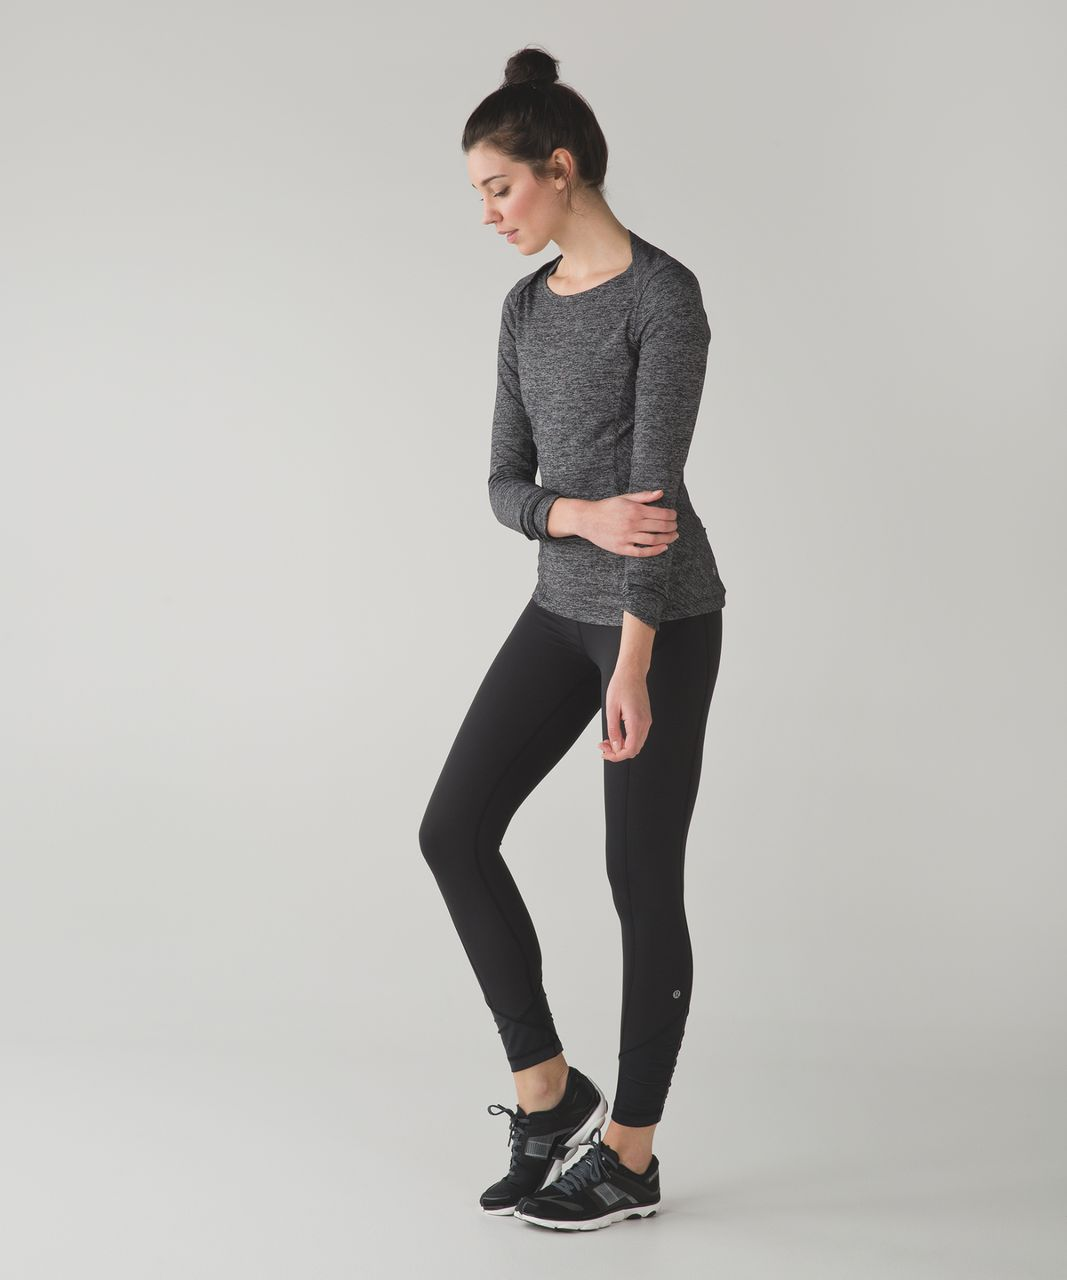 Lululemon Pace Queen Tight - Black